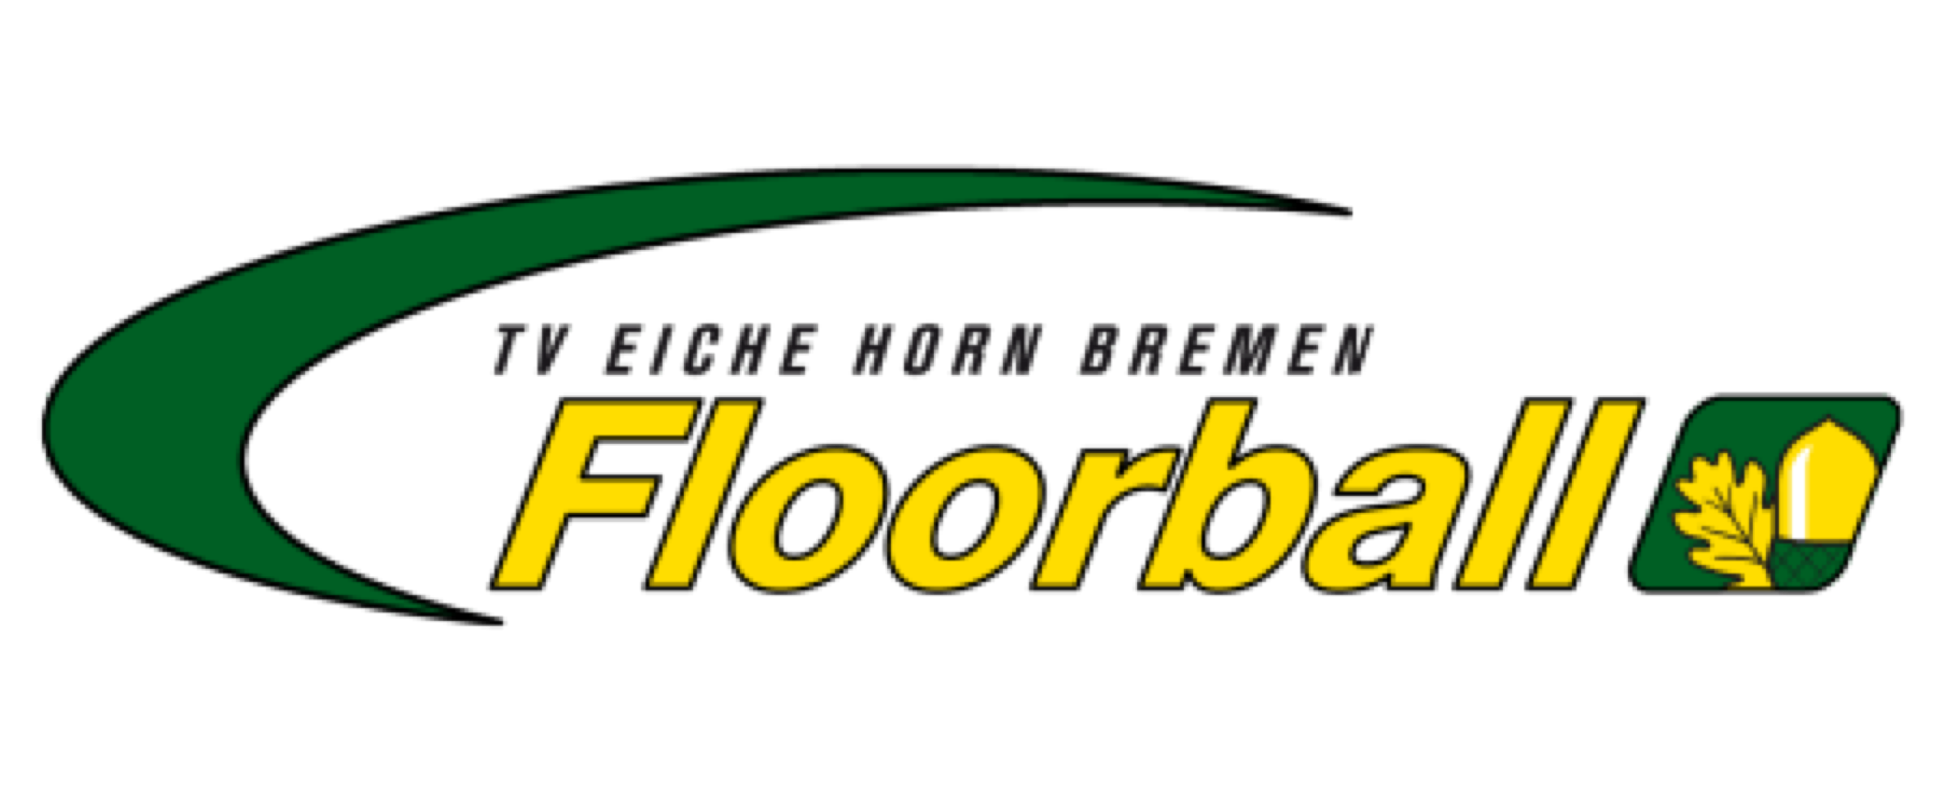 Eiche Horn Floorball